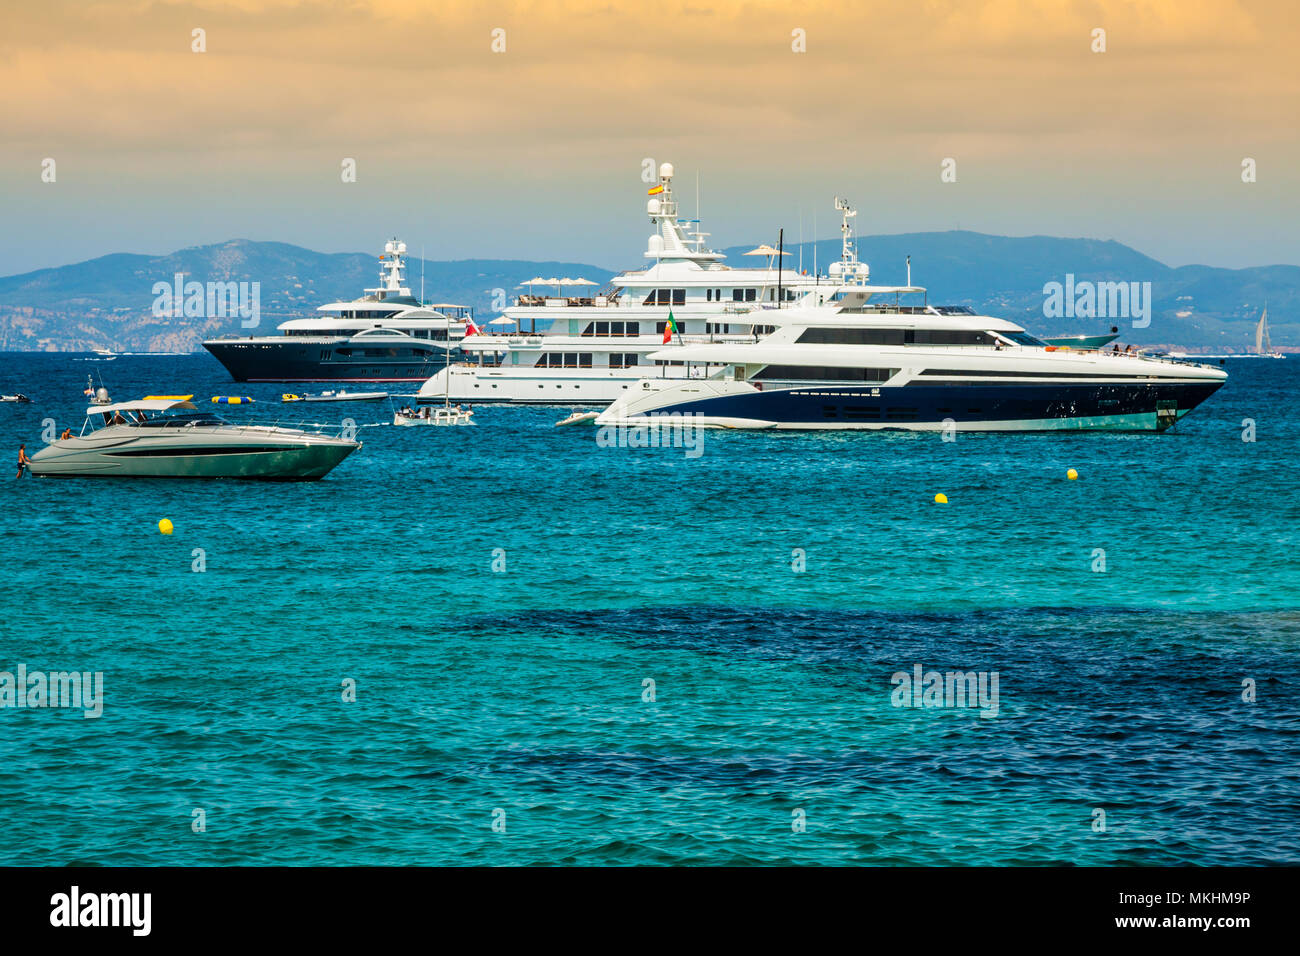 Luxury yachts in turquoise beach of Formentera Illetes - Stock Image